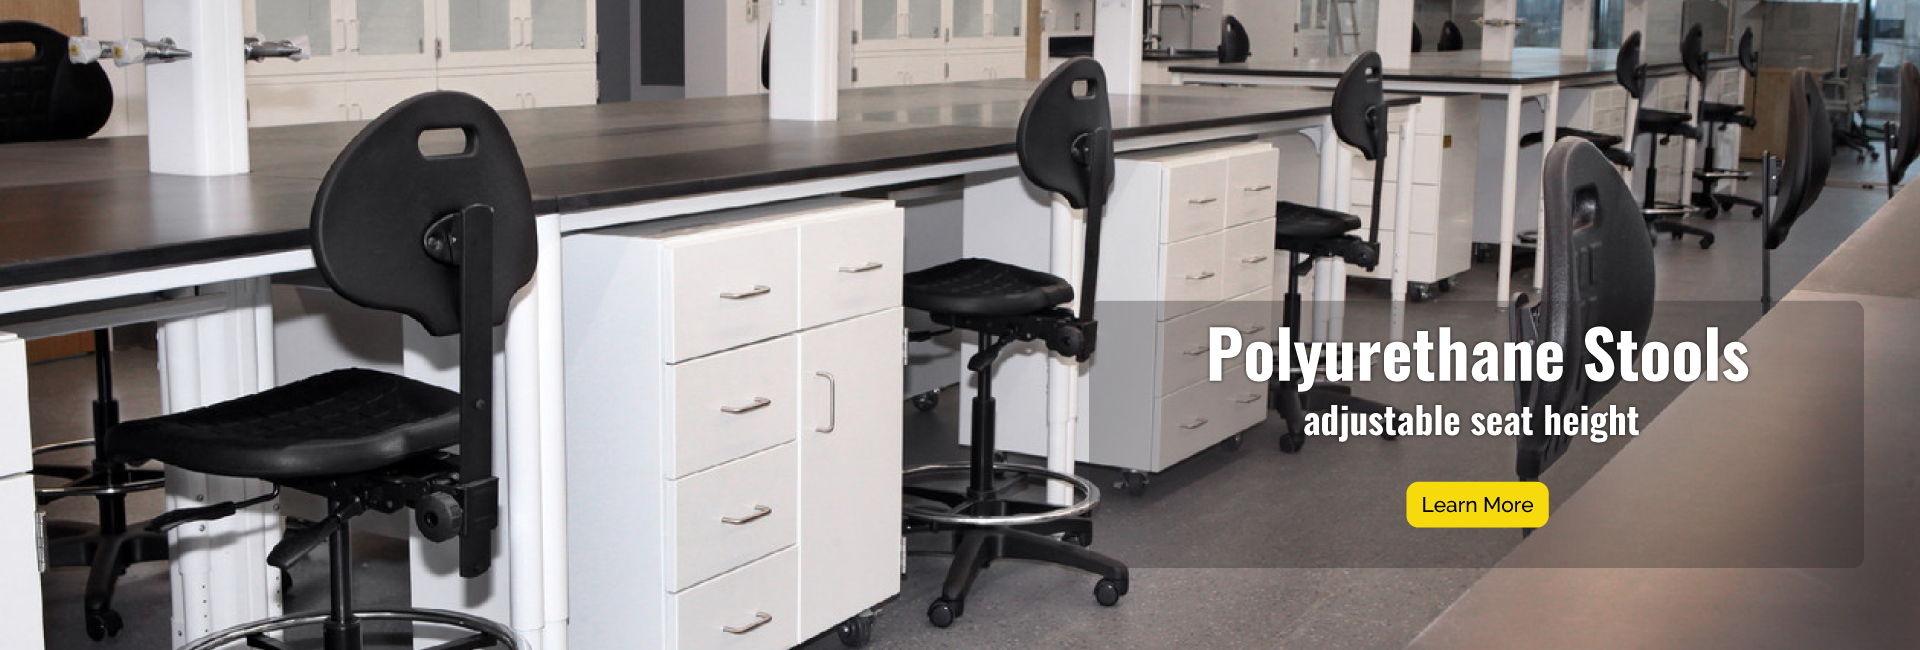 Polyrurethane Stools have adjustable seat height and depth